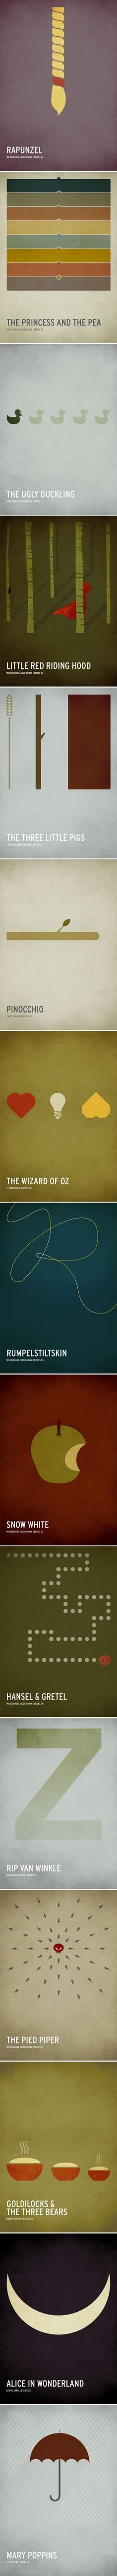 Minimalist Posters of Children's Books